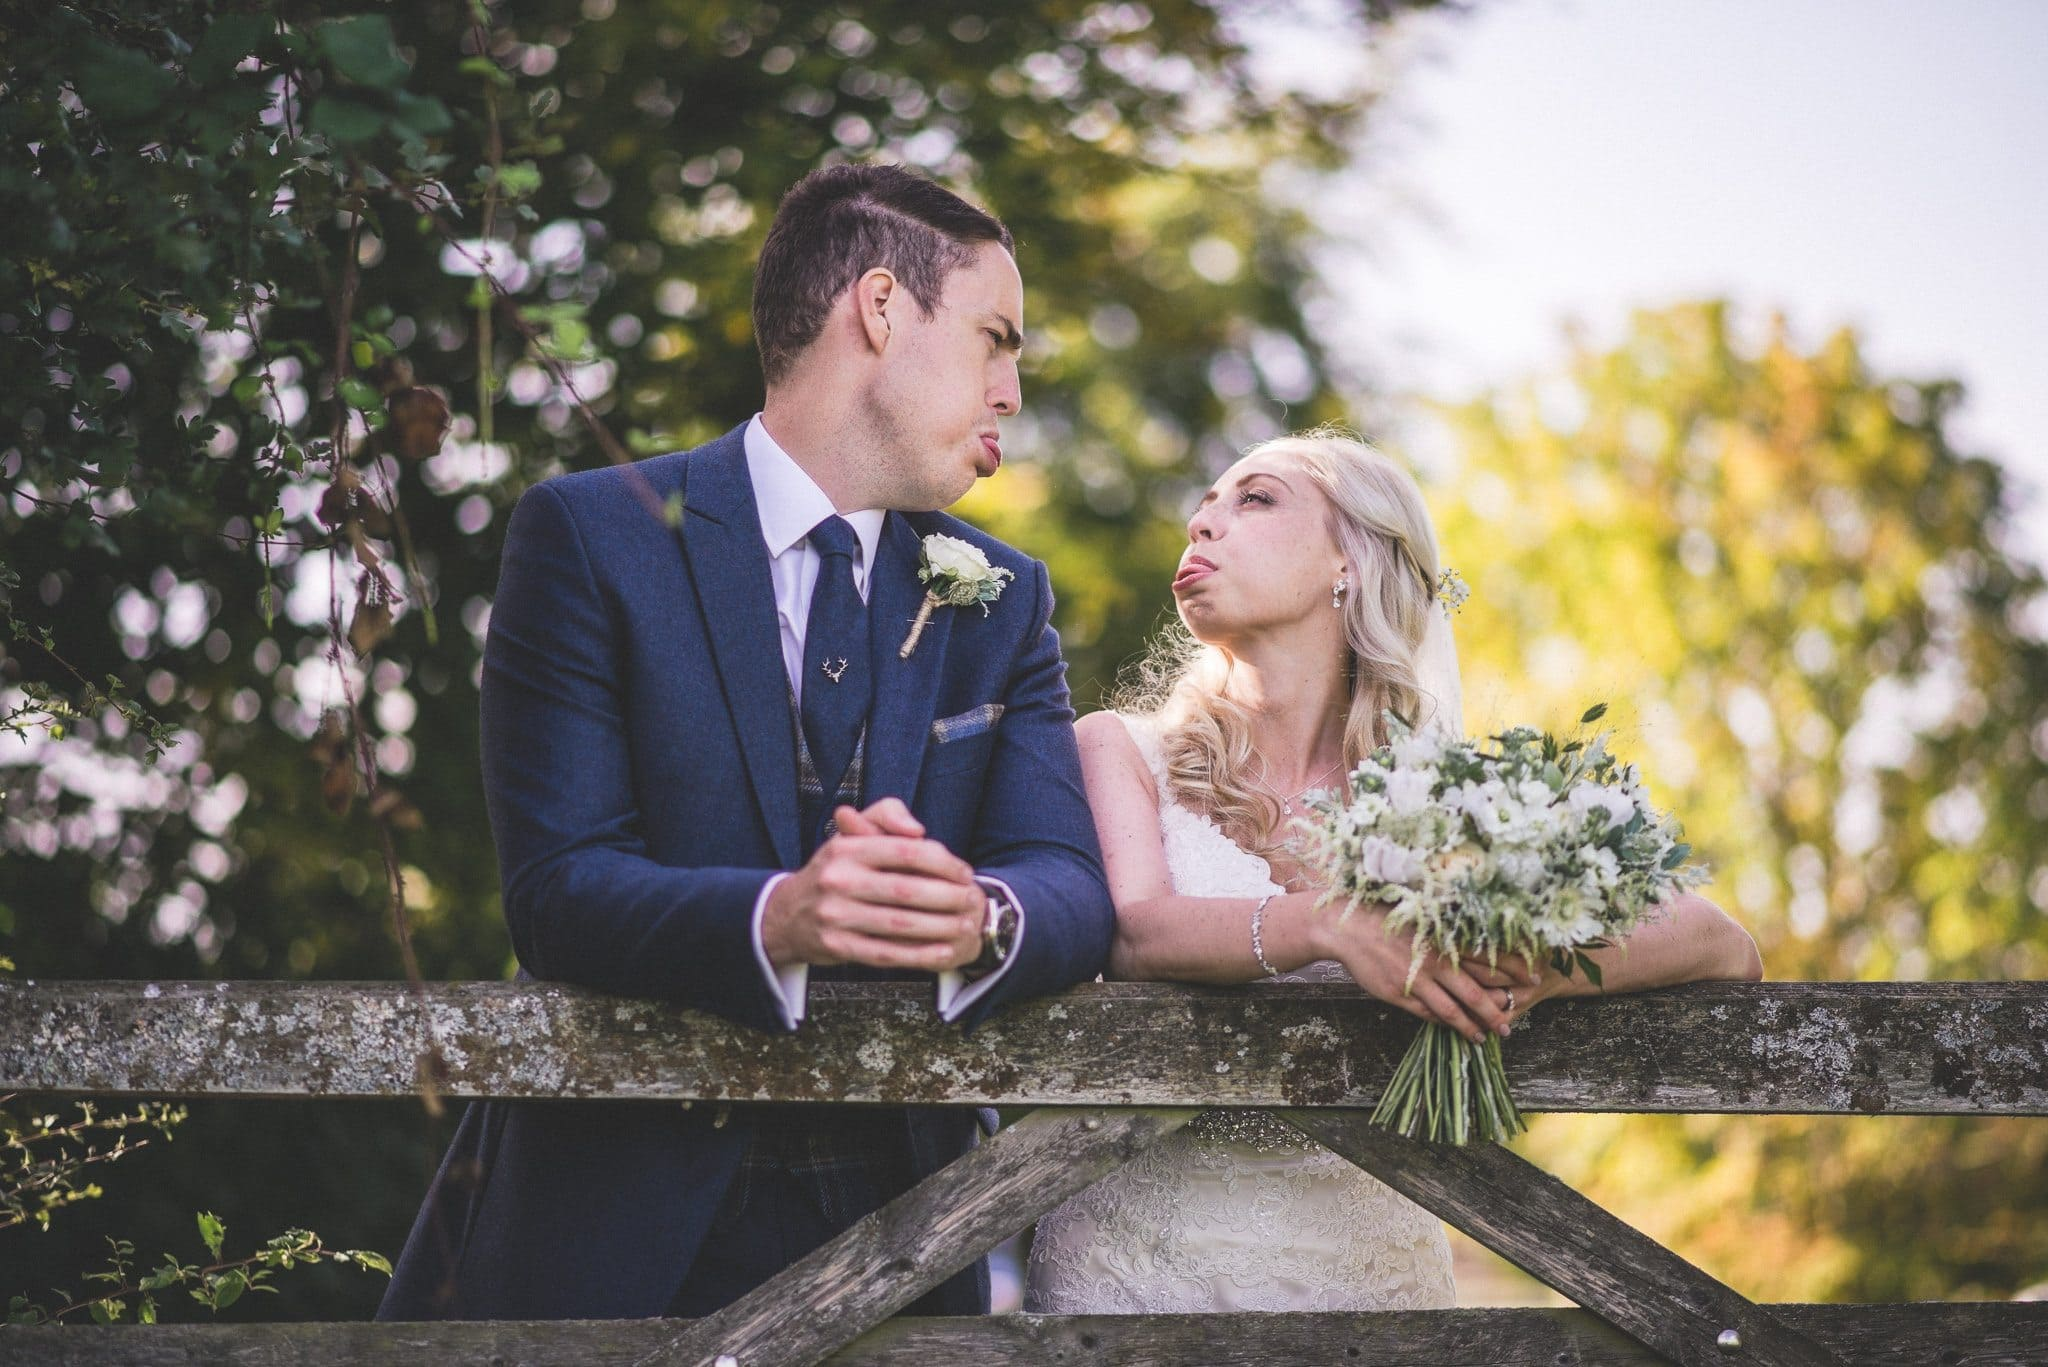 Bride and Groom blow raspberries at each other at their fun Gate Street Barn wedding